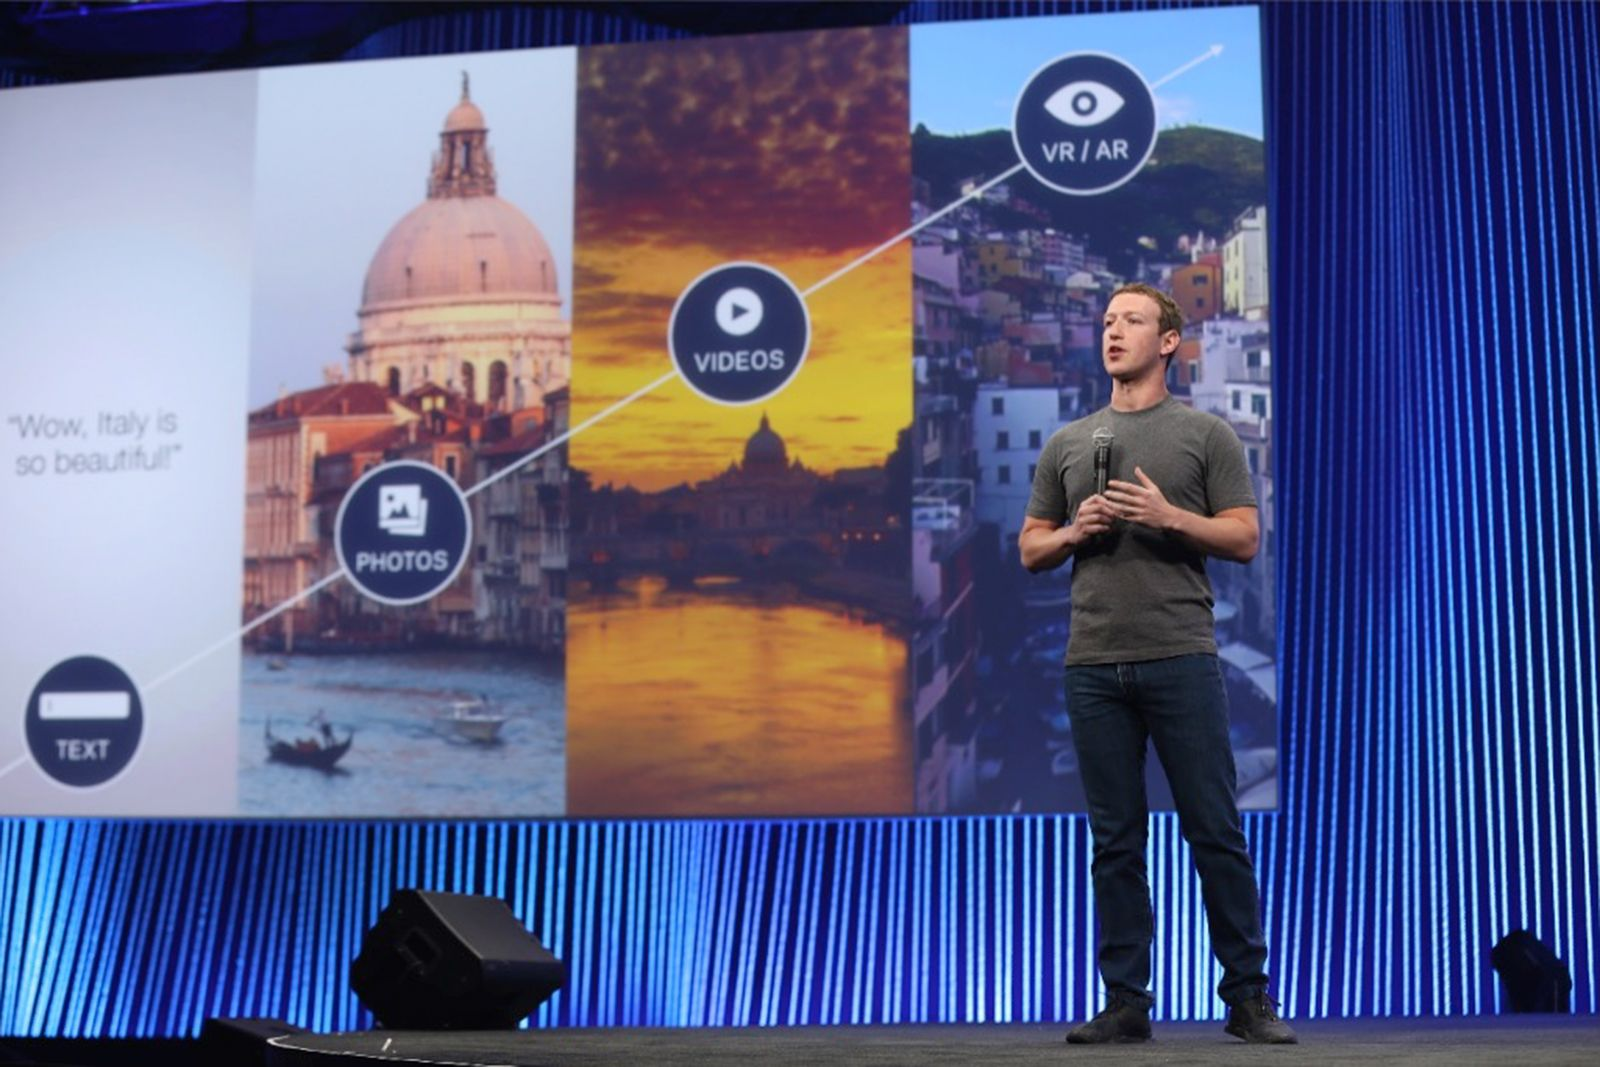 Facebooks virtual reality unit needs to speed up its